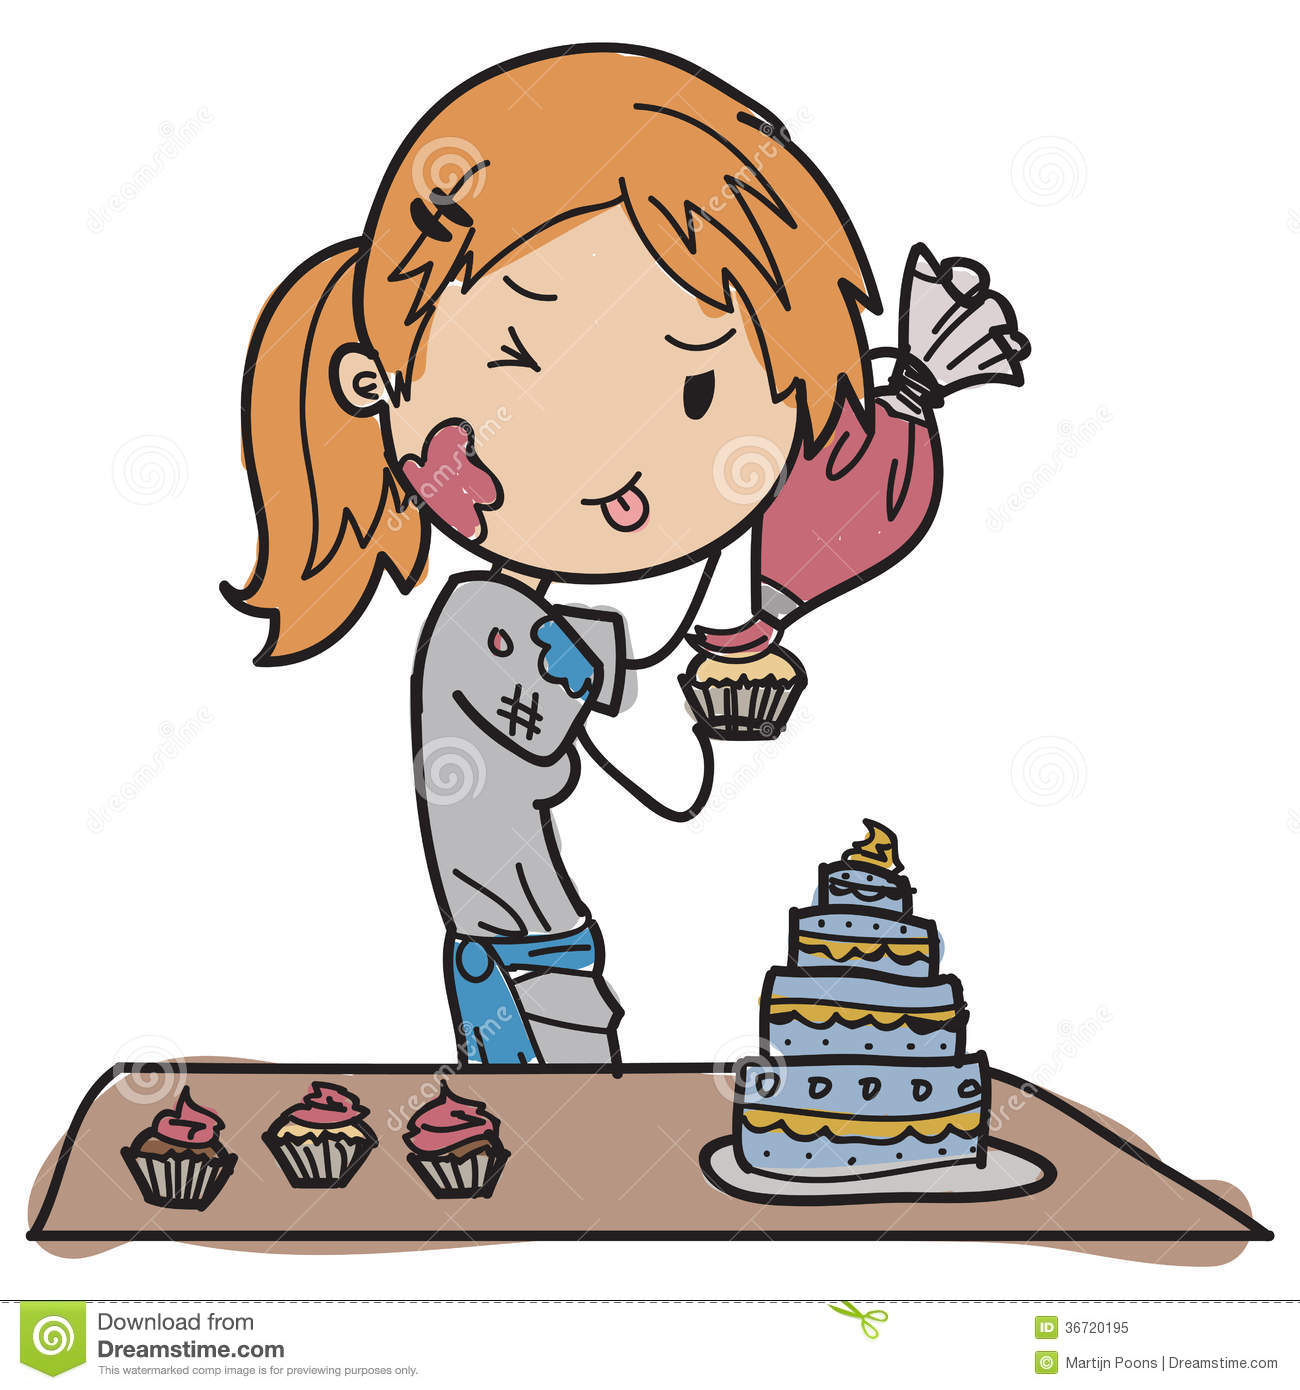 young-pastry-chef-decorating-her-36720195